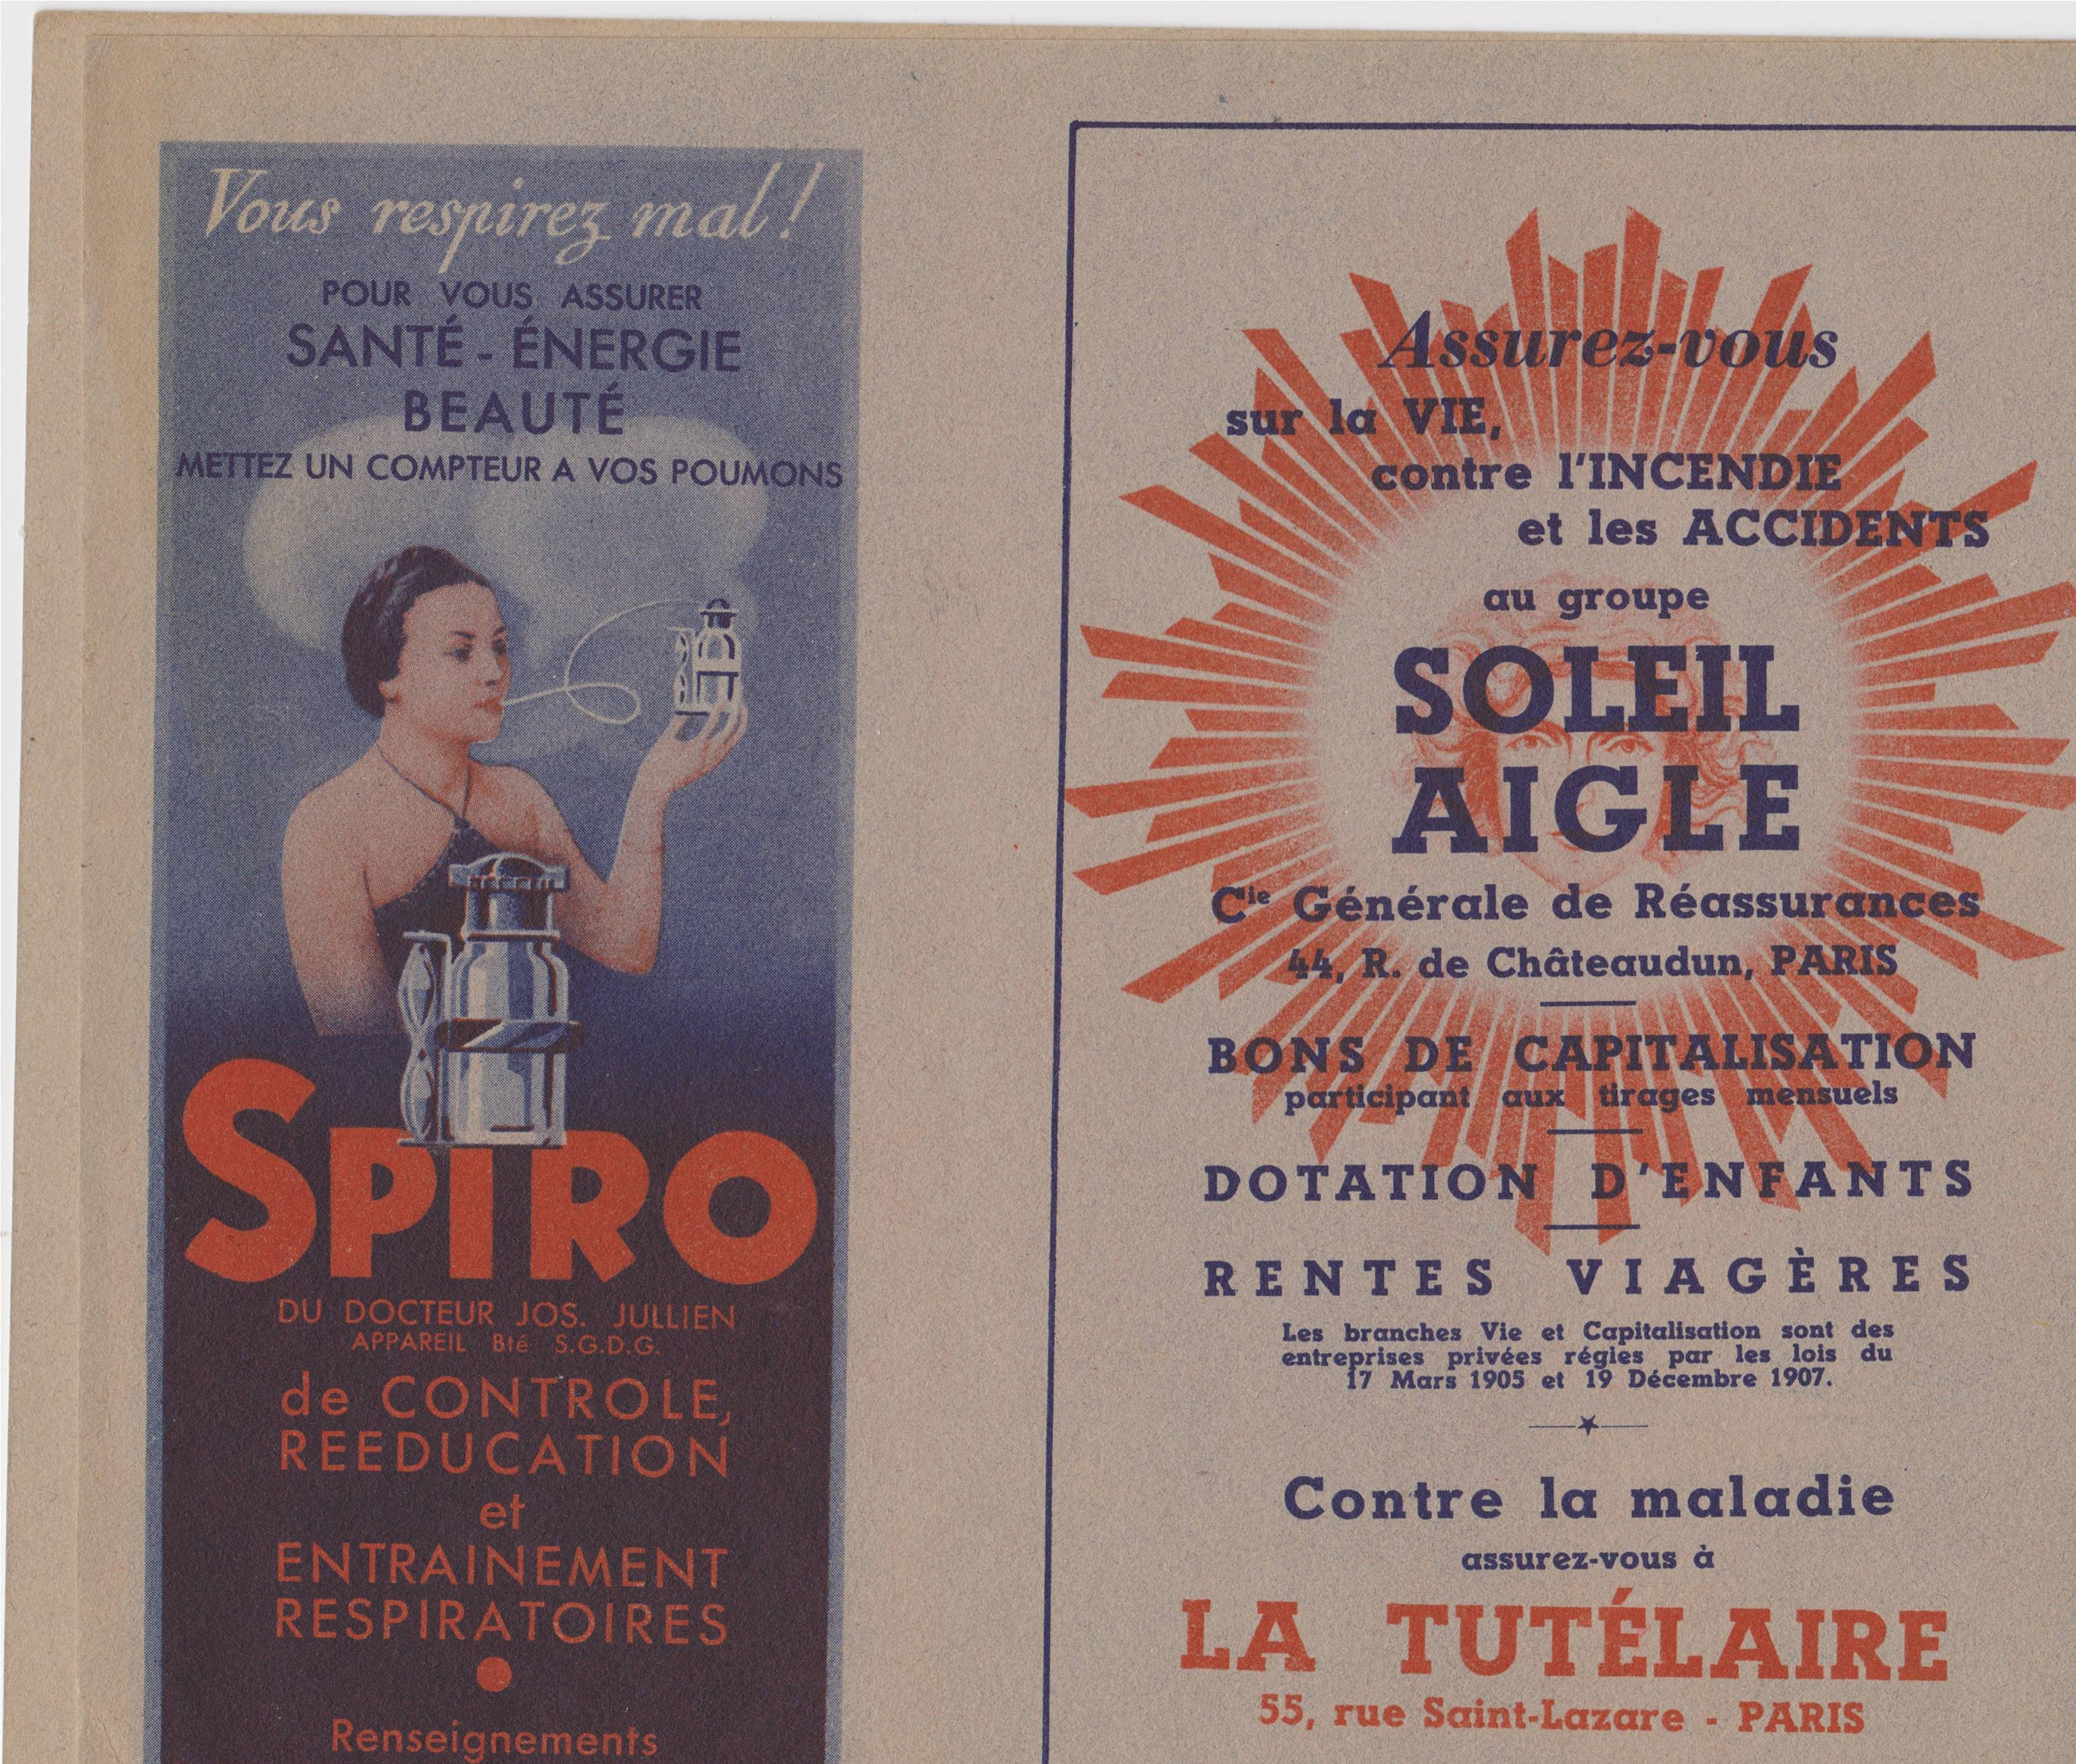 Spiroscope_Dr_Jos_Jullien_1936_Advertisement_2